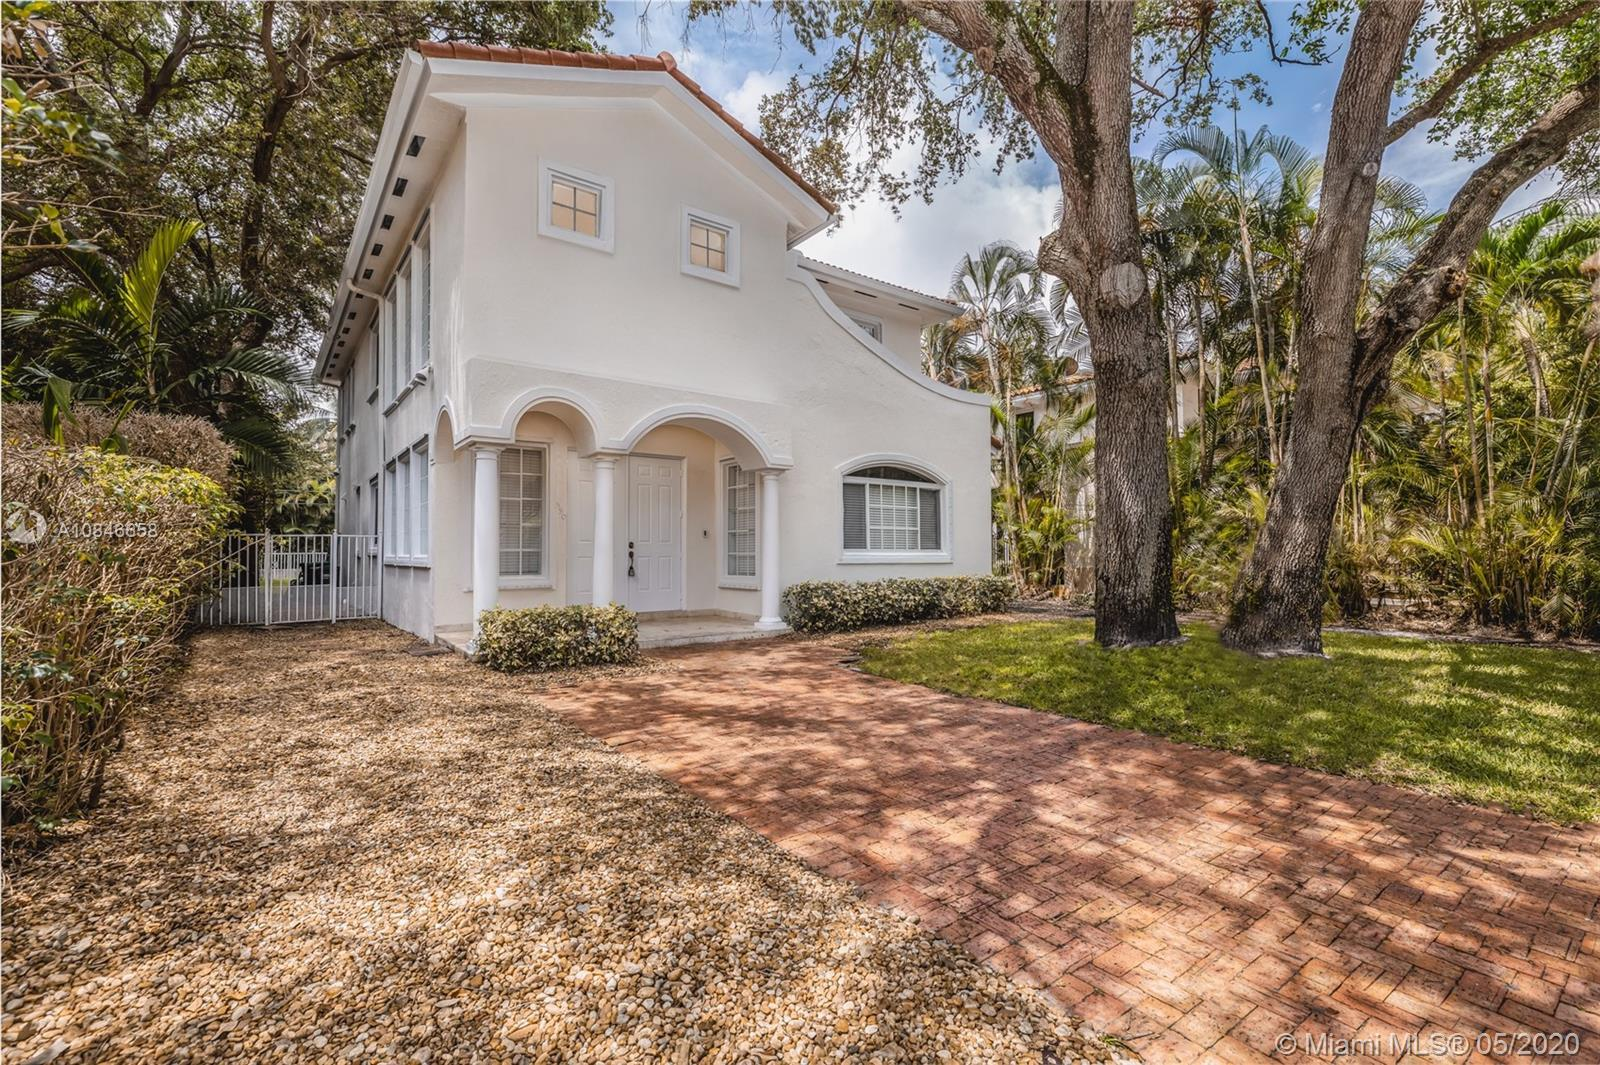 INMACULATE HOUSE IN MIAMI SHORES, CONSTRUCTED IN 2005, WELL MAINTAINED. THE HOUSE FEATURES MARBLE AN